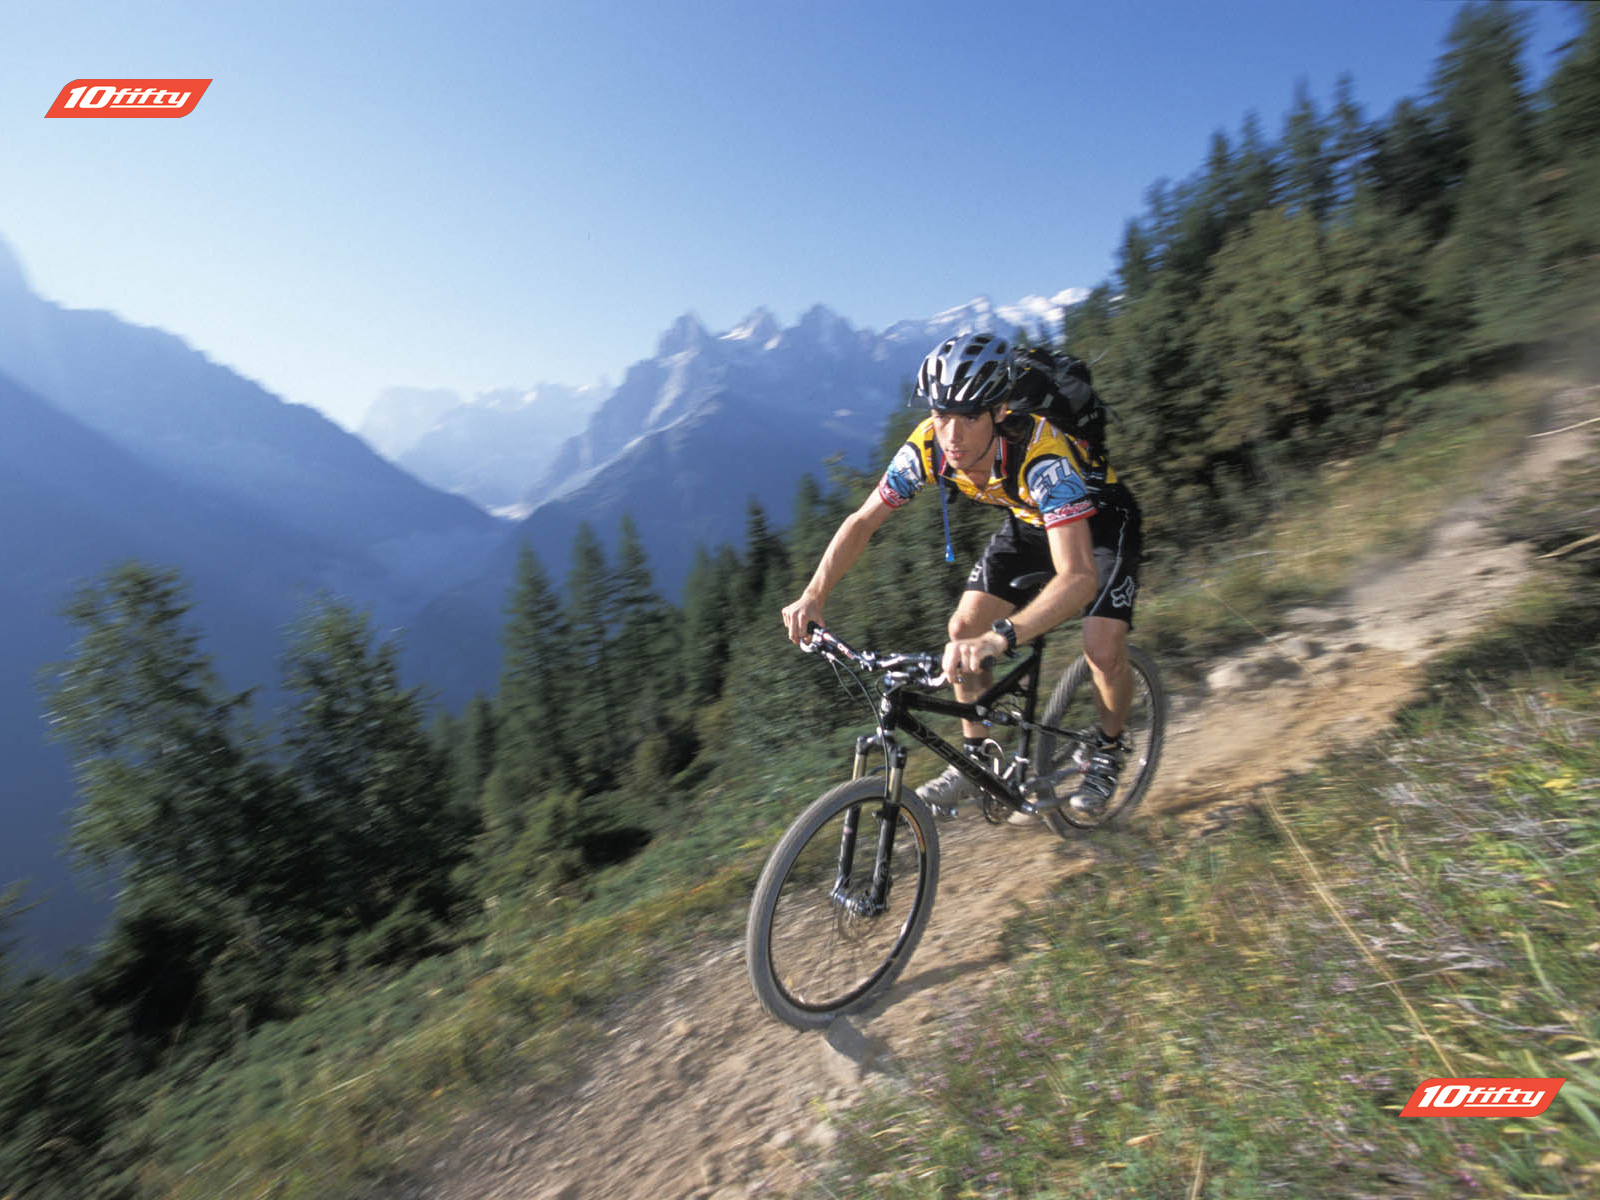 Mountain Road Bike Wallpapers: Mtb Wallpapers Specialized